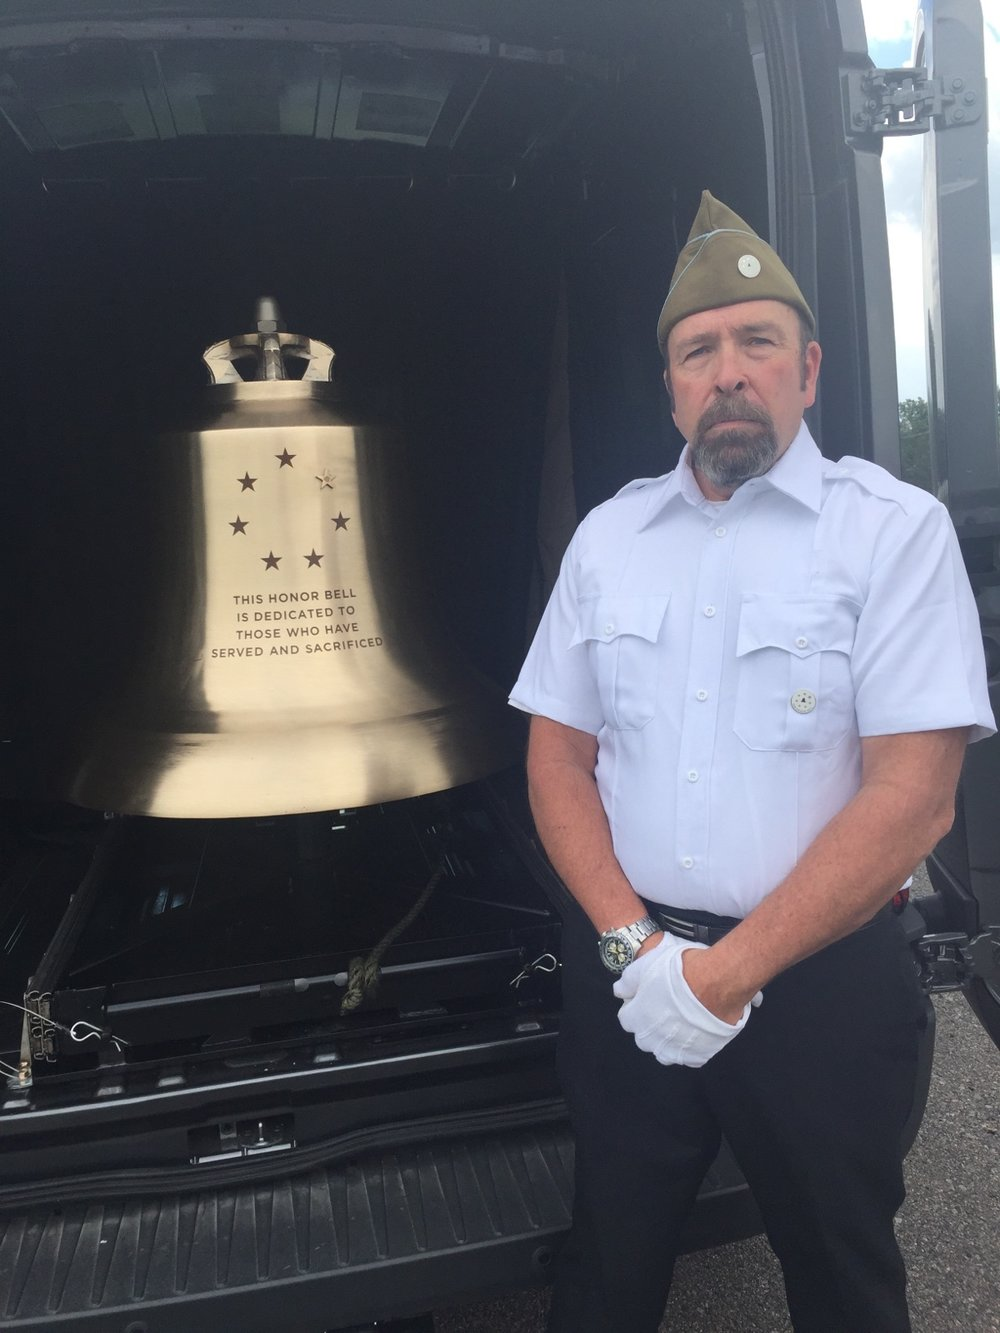 The Honor Bell is tolled exclusively by veteran volunteers